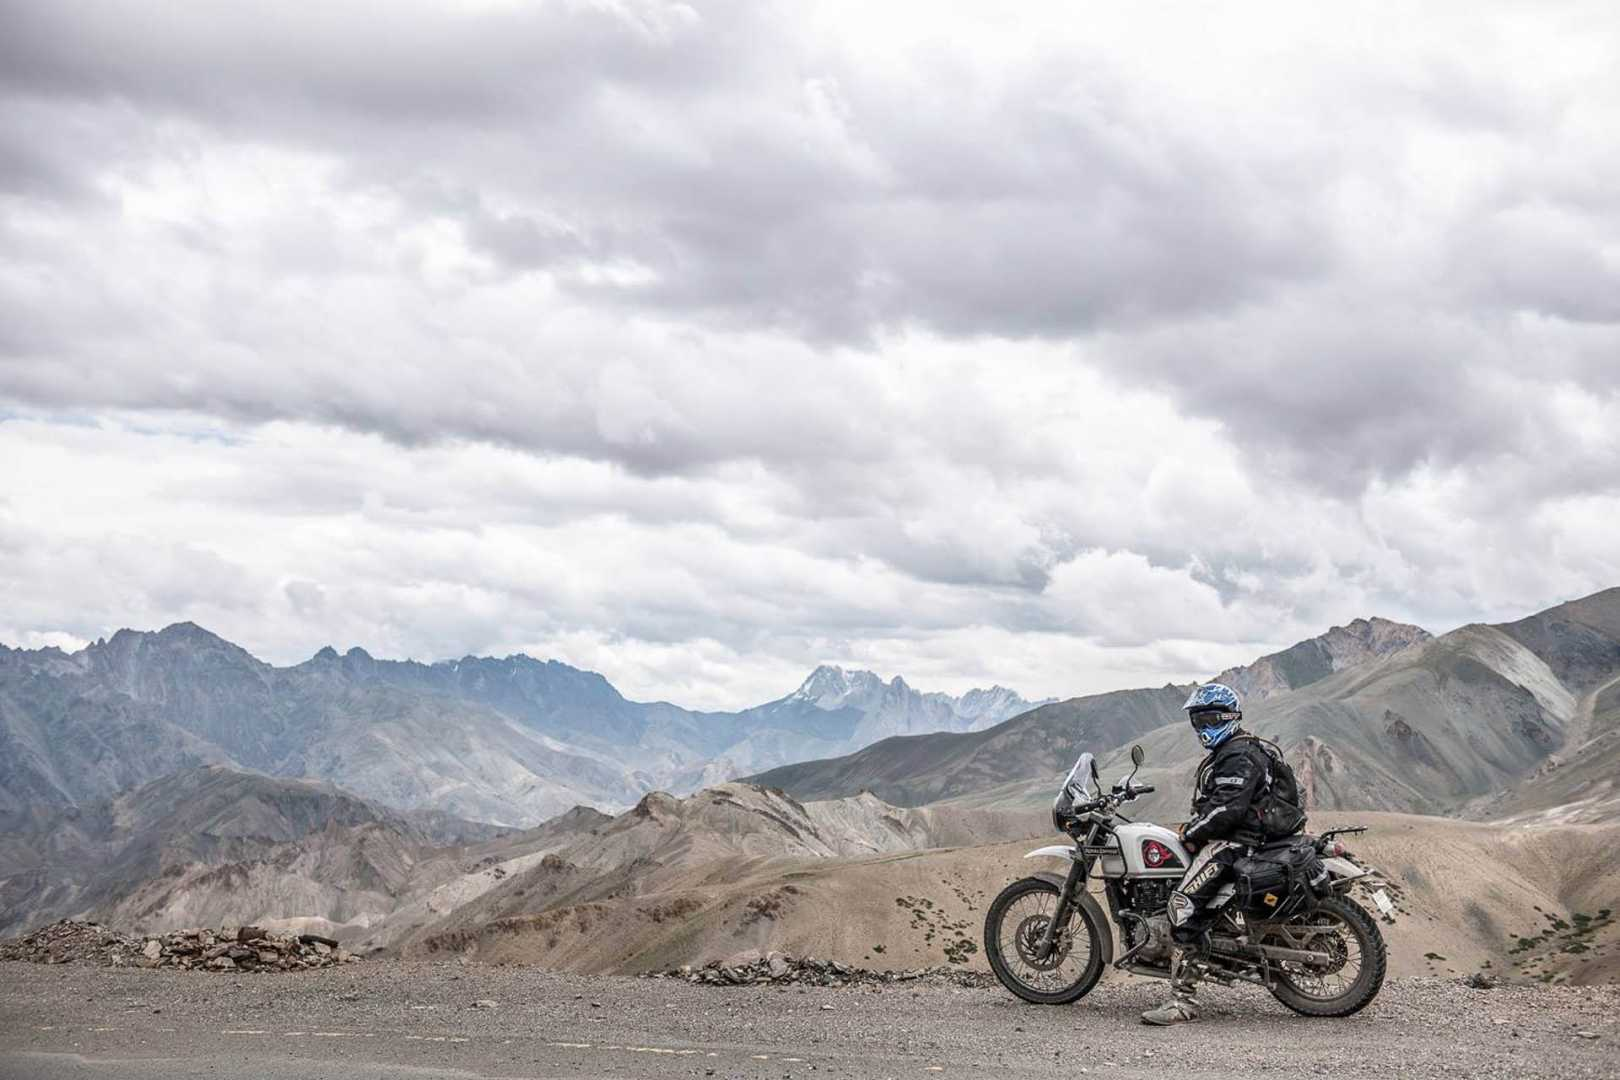 Motorcyclist in the Himalayas